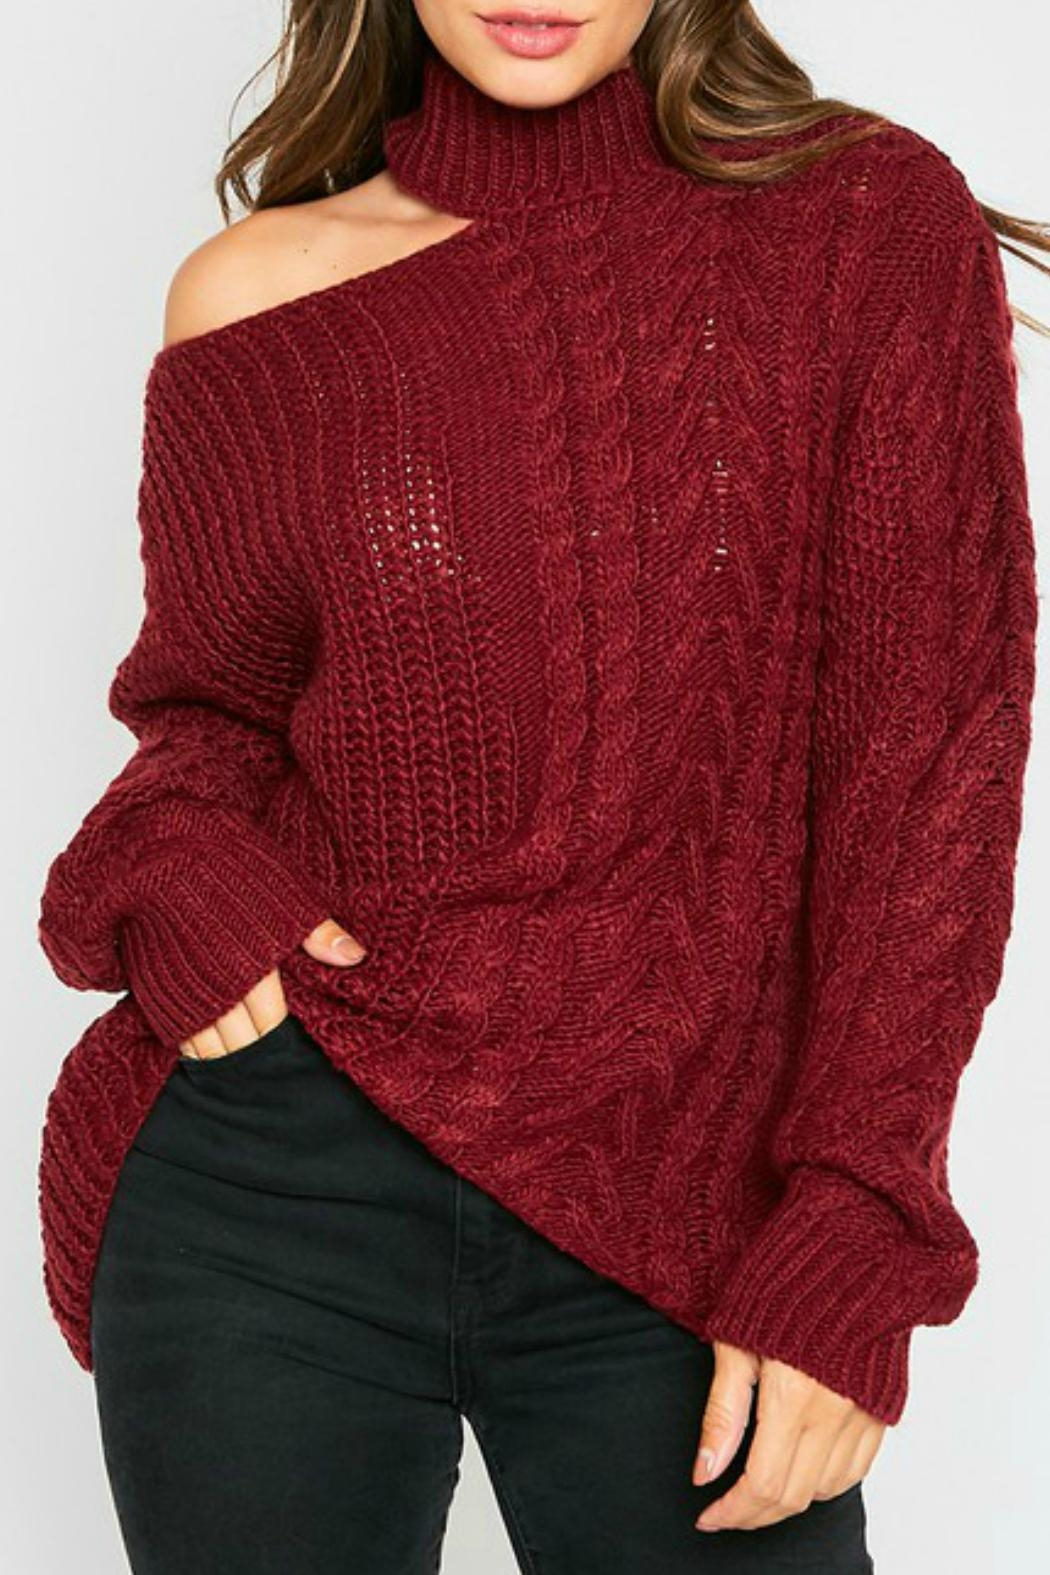 Peach Love California Brittany One-Shoulder Sweater - Main Image